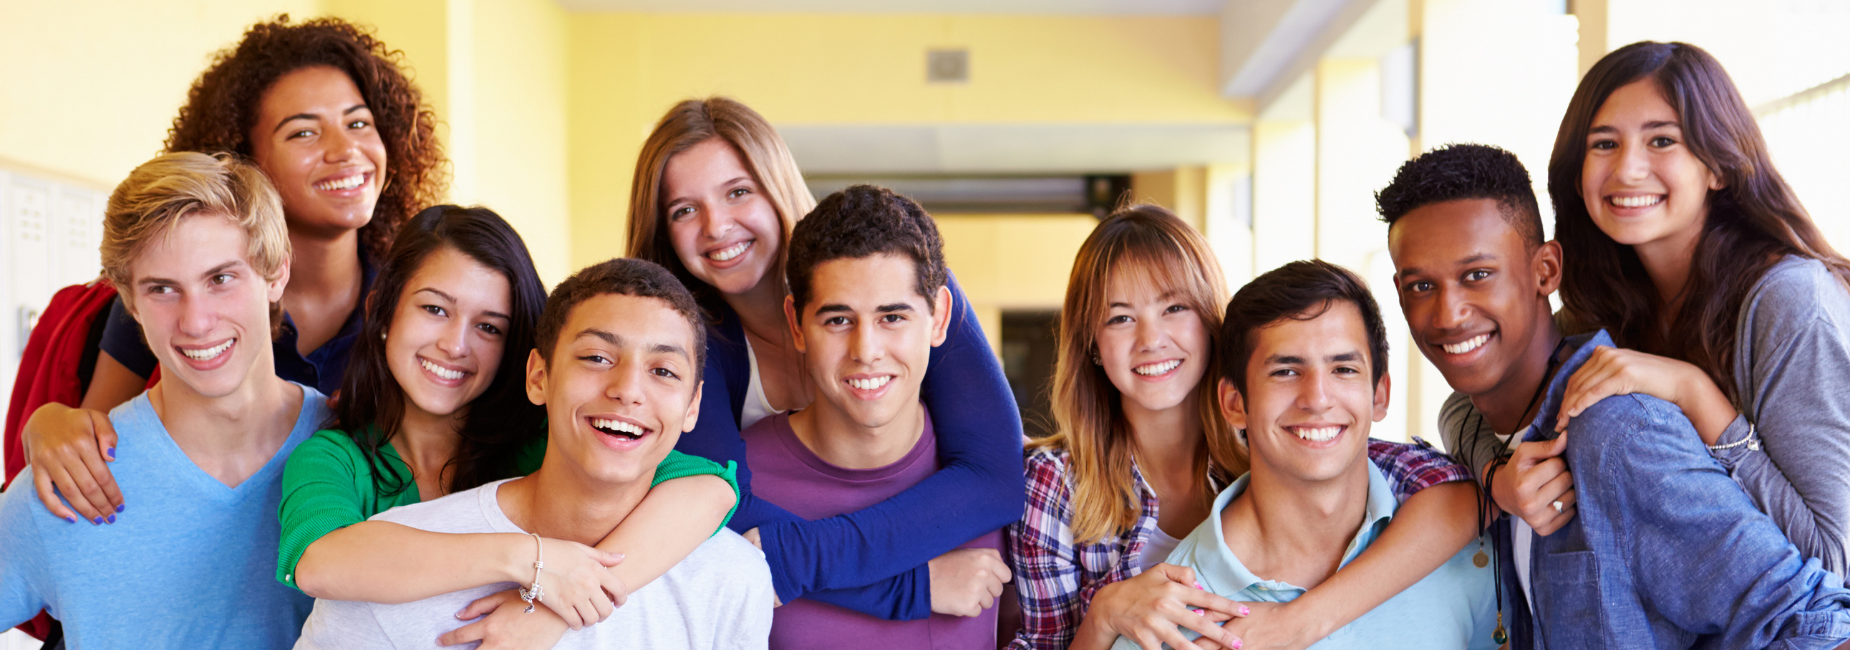 group of teens pose together